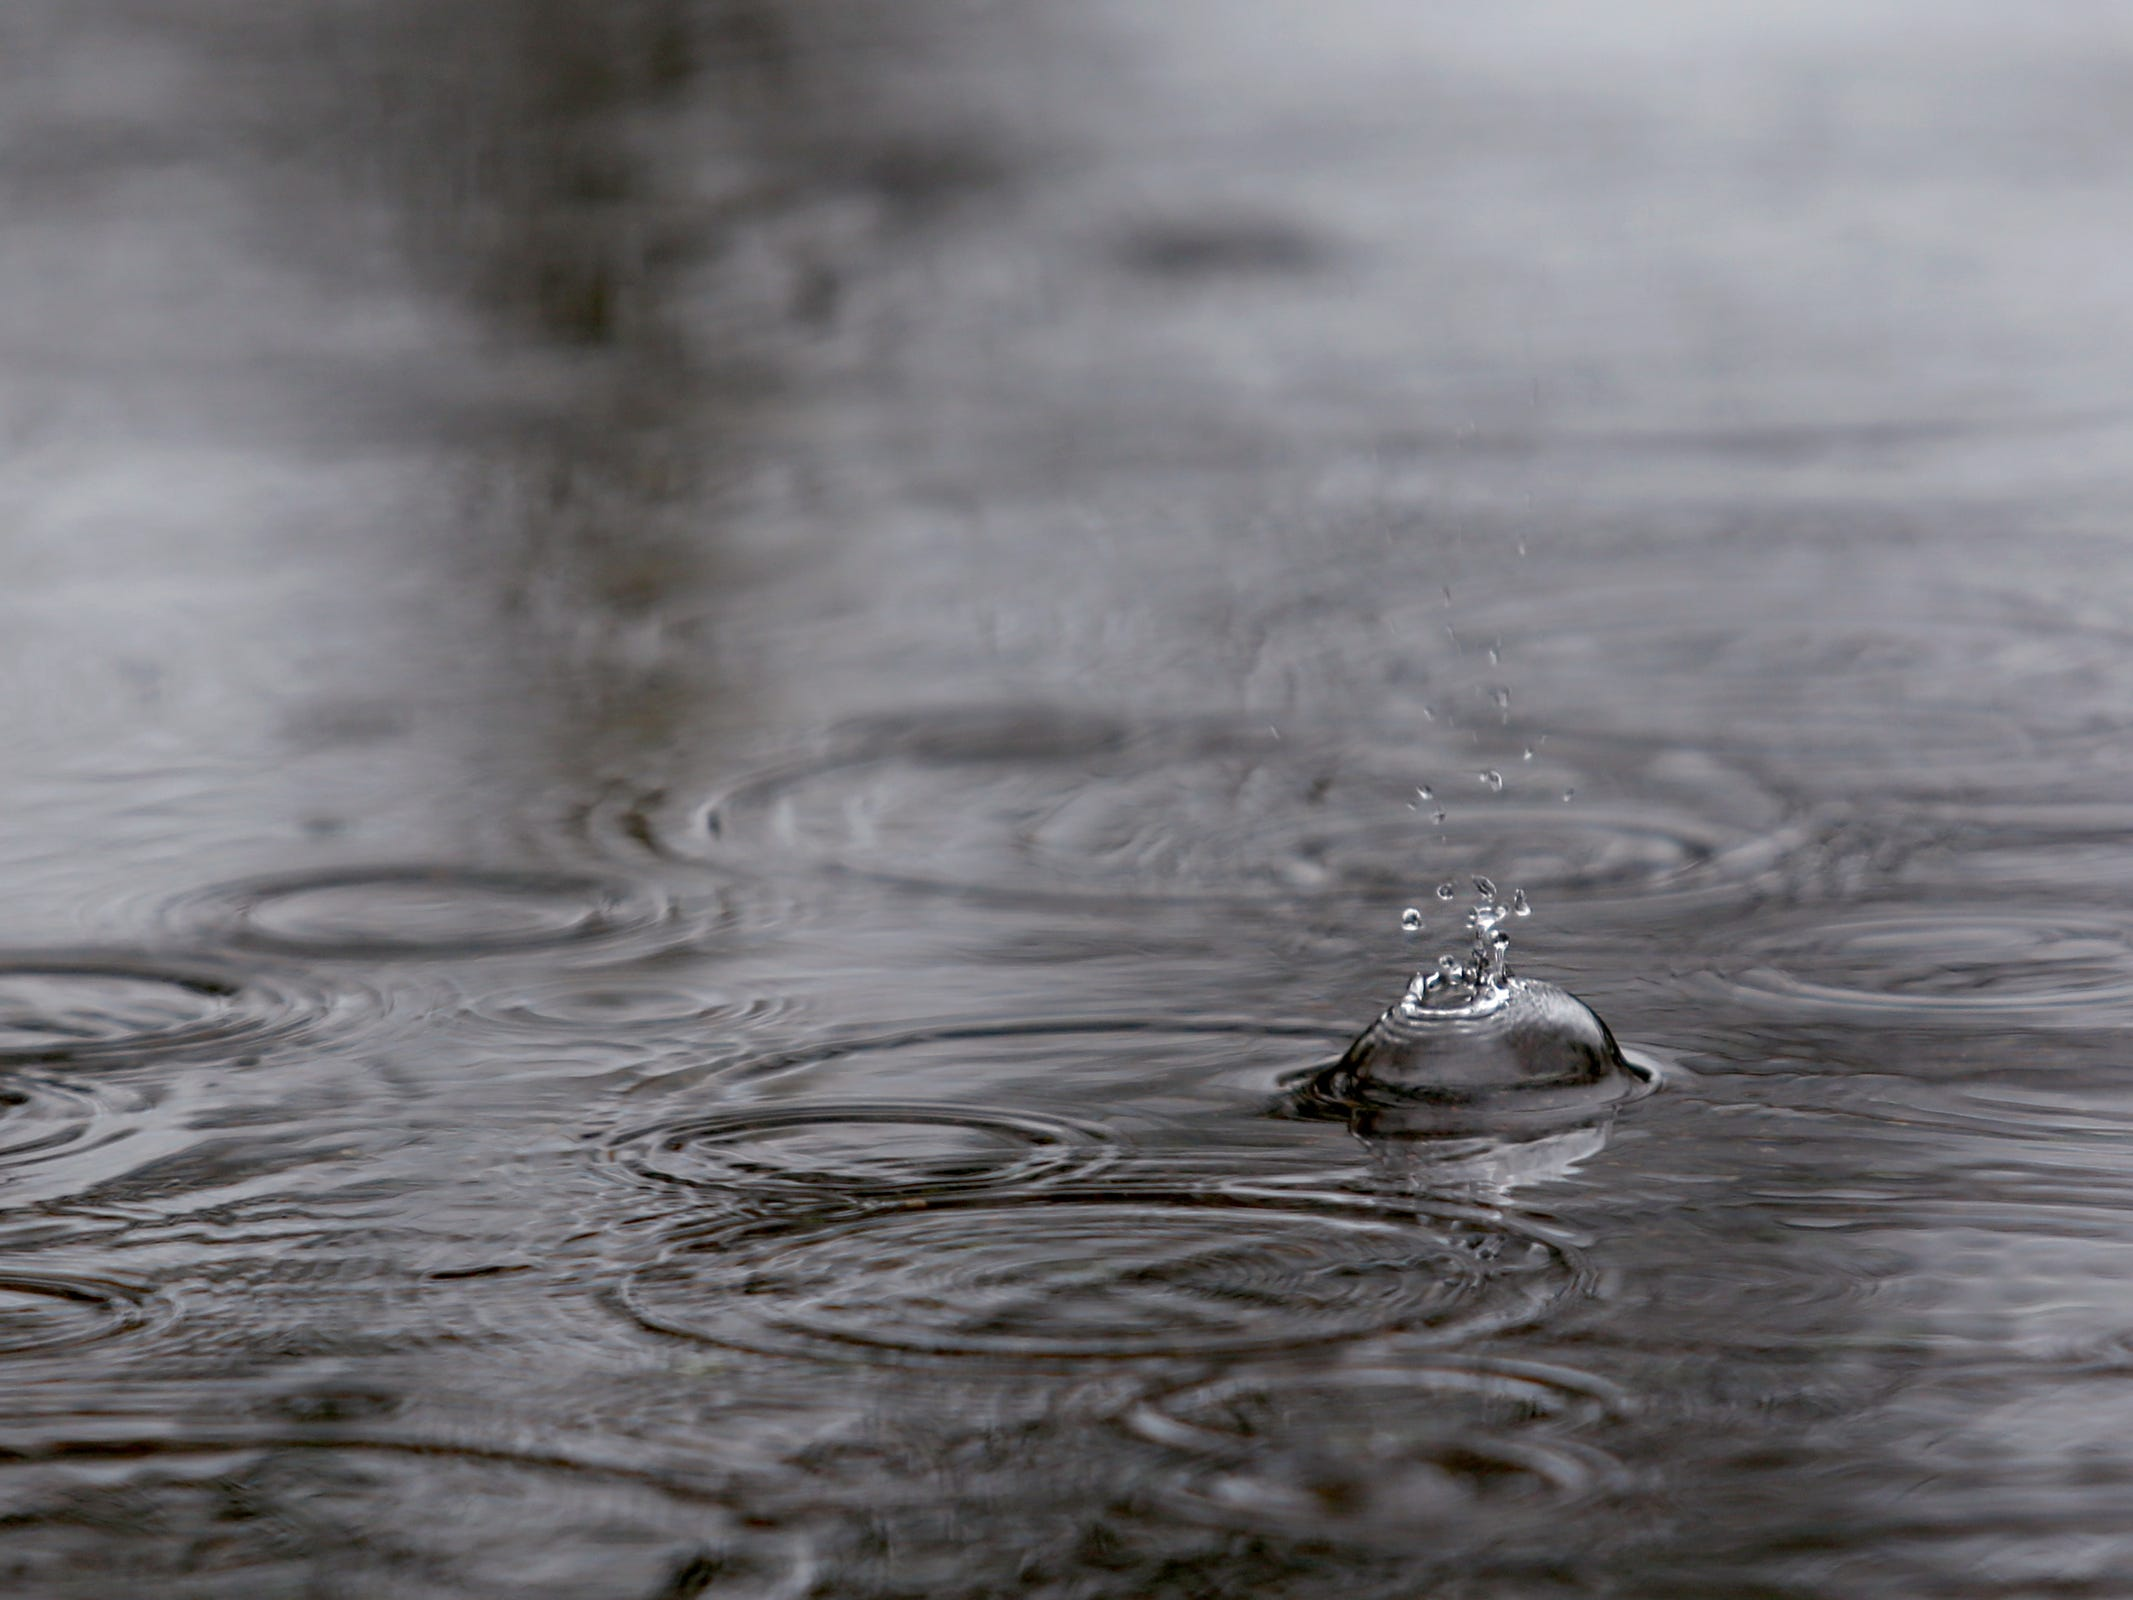 Rain falls in a puddle in Salem on Thursday, Feb. 14, 2019.